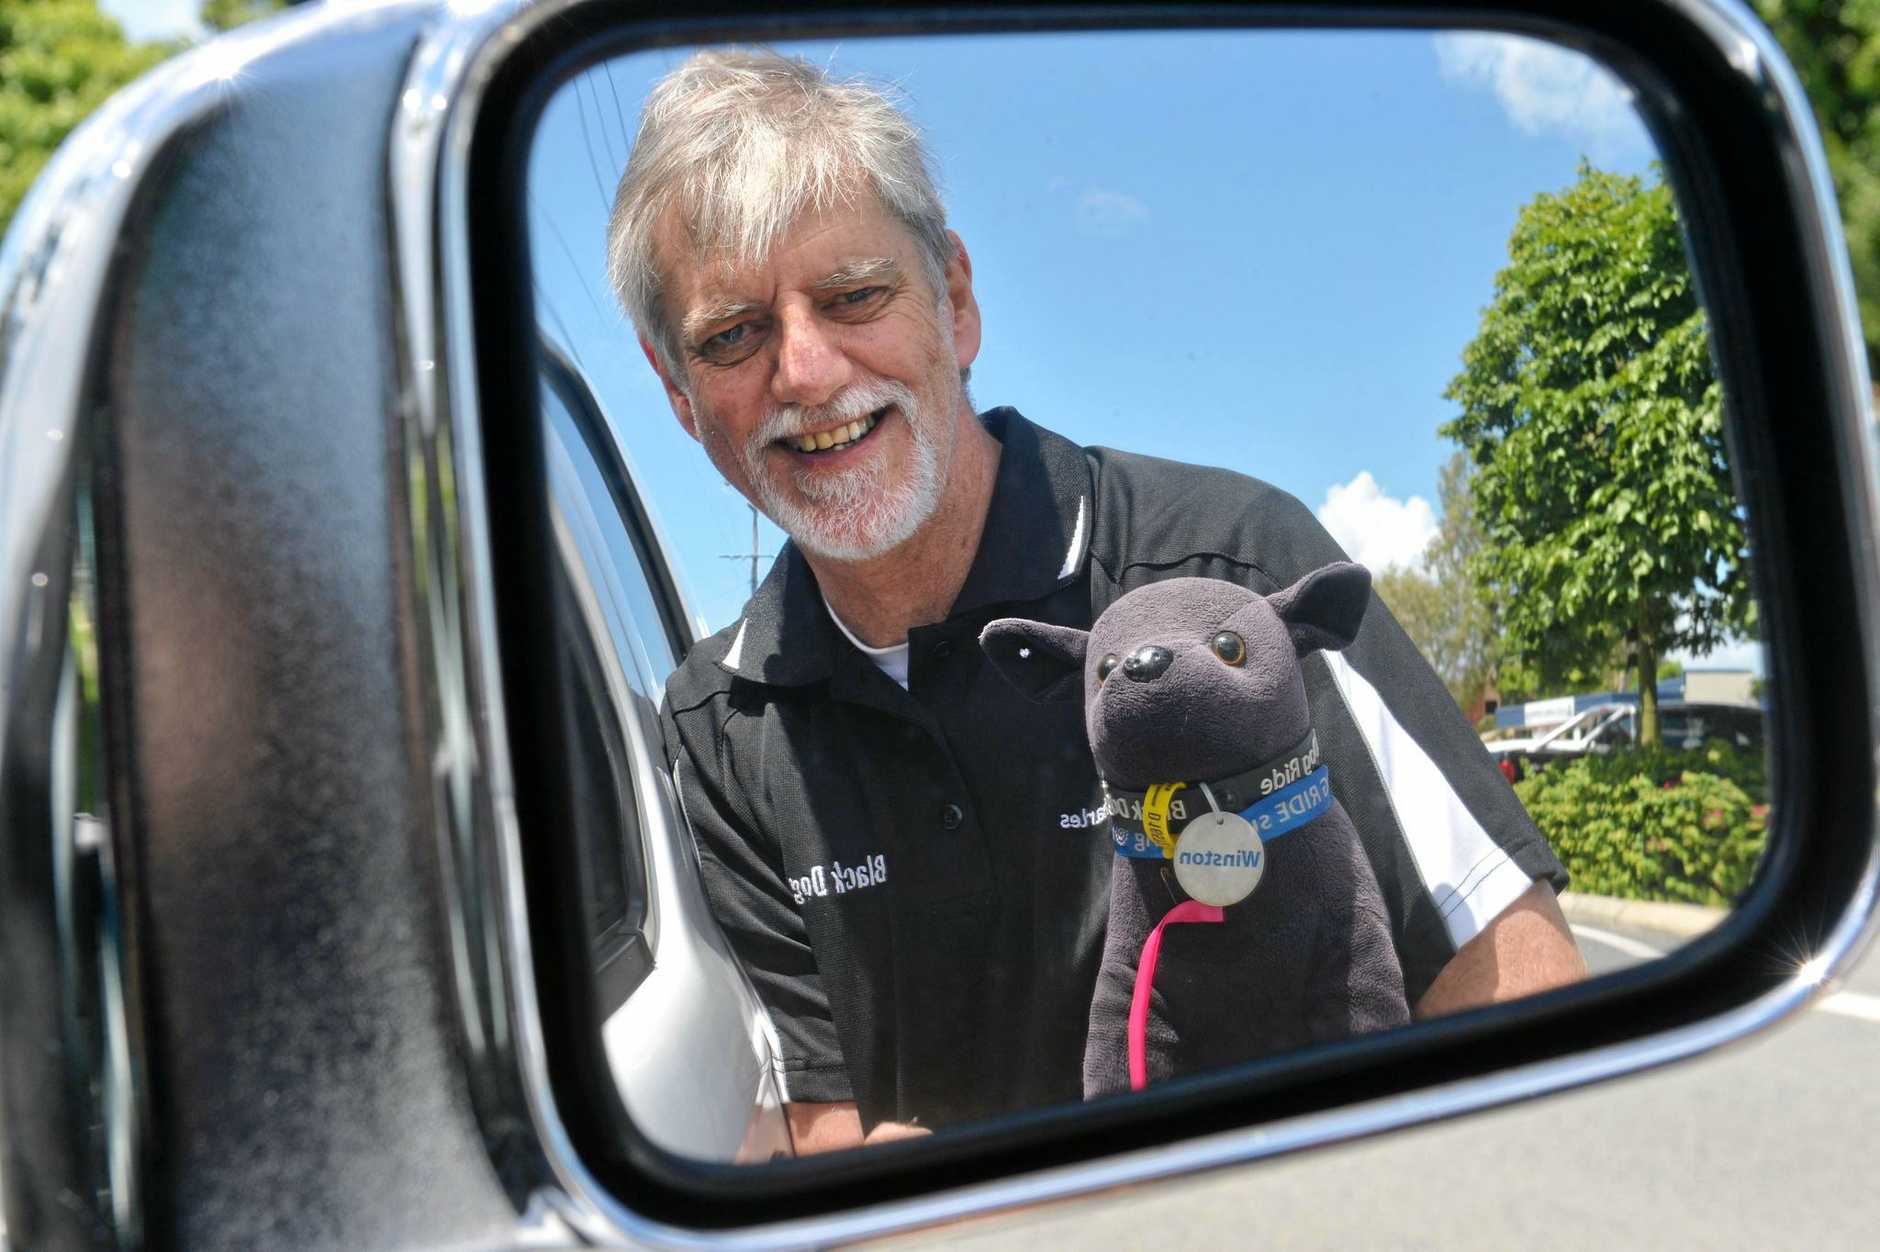 Charles Linsley and mascot Winston are all set for the Black Dog ride in Mackay this weekend.